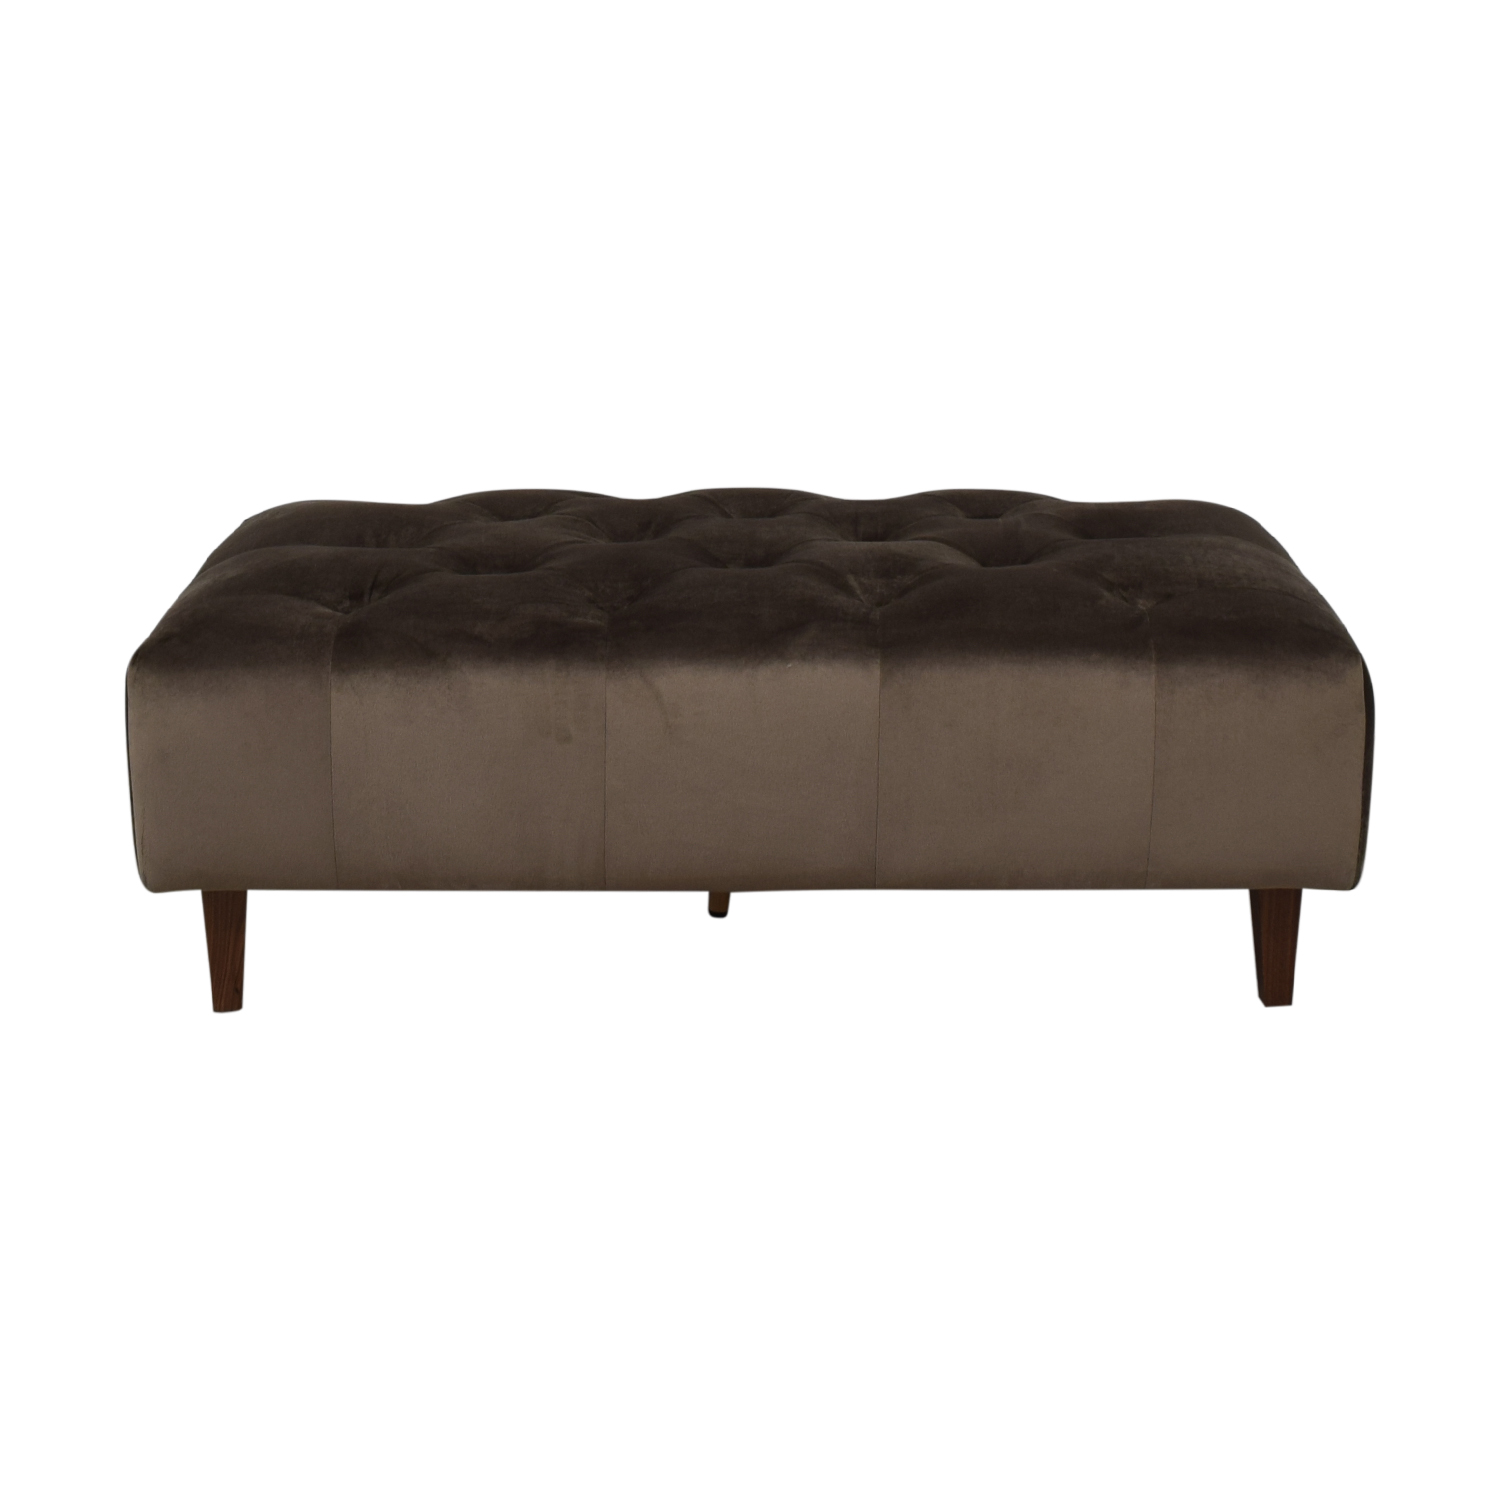 Ms. Chesterfield Mod Velvet Quartz Tufted Ottoman / Chairs